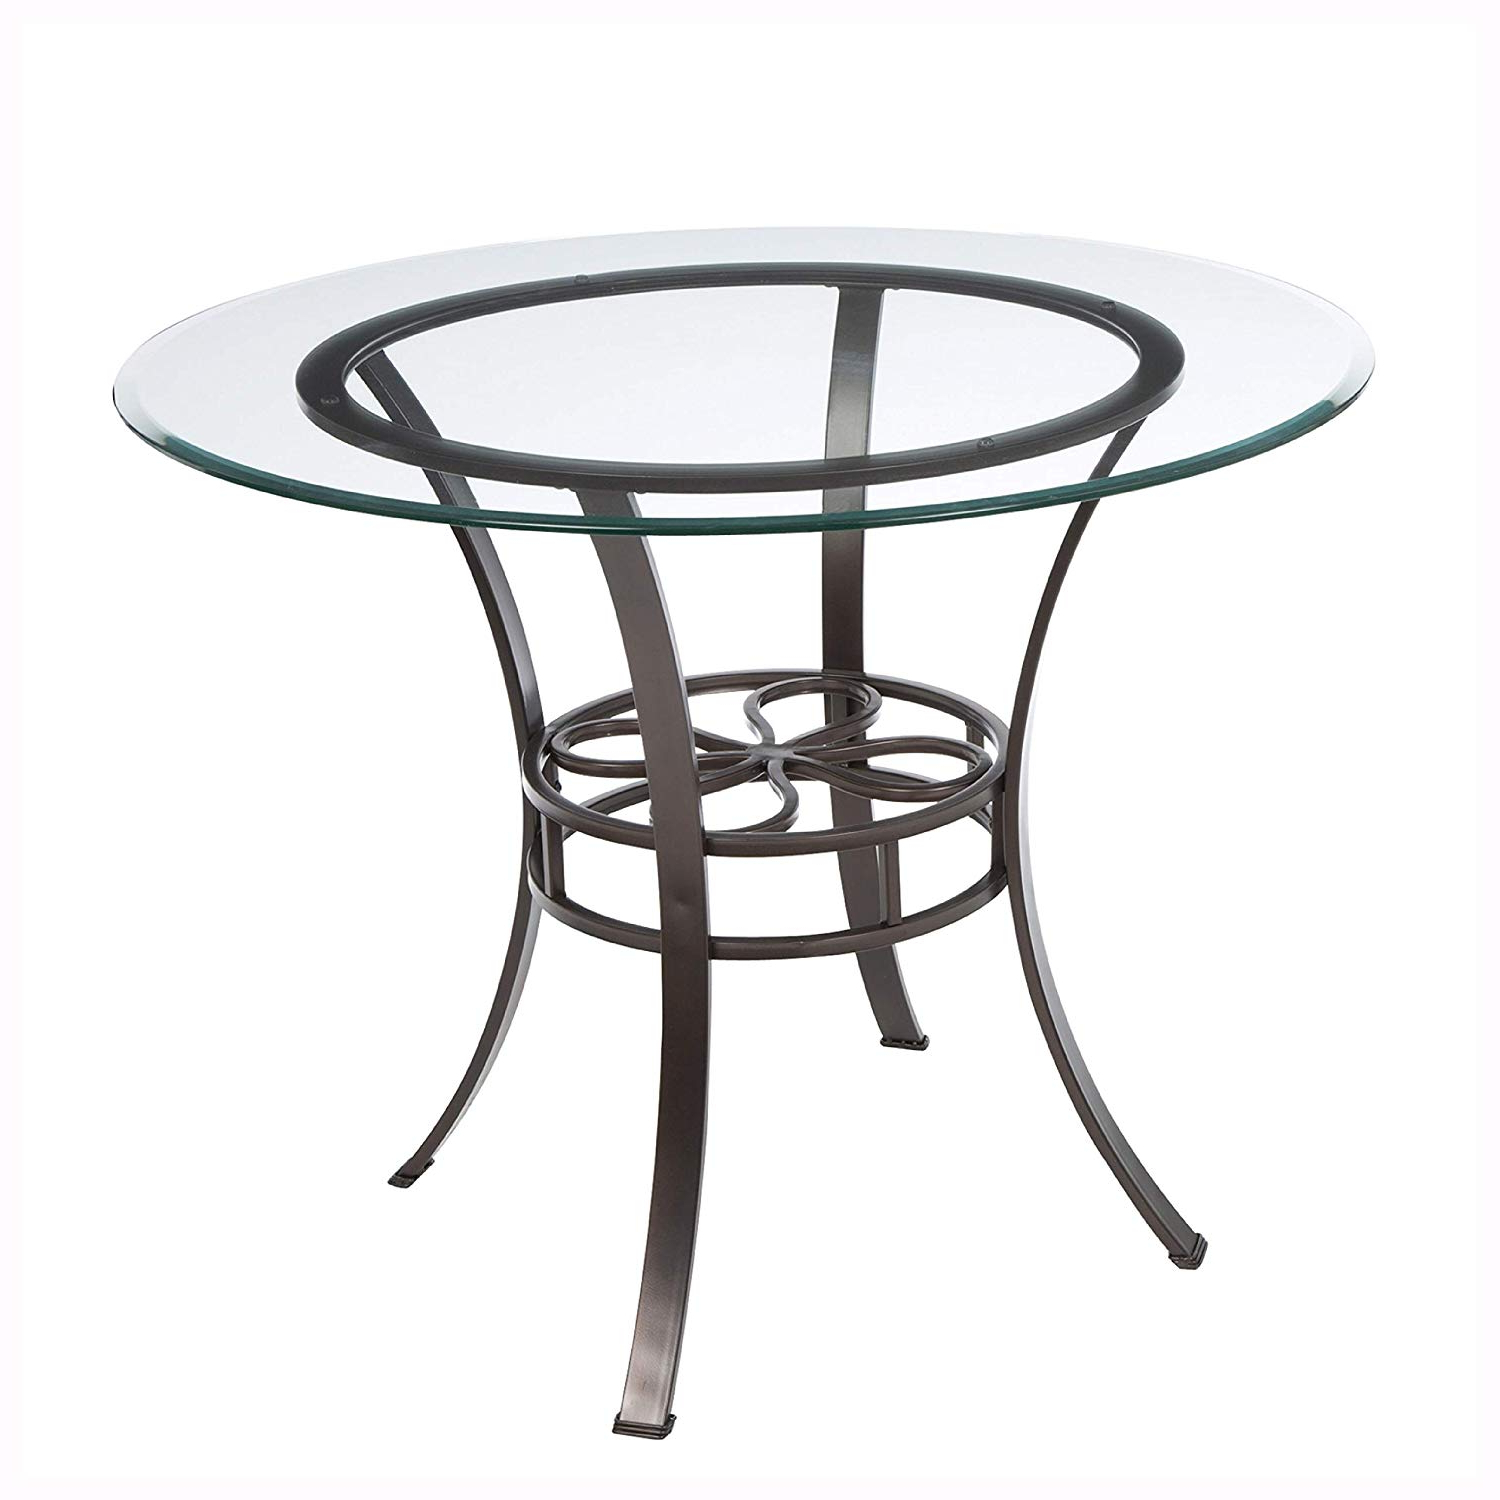 2018 Round Glass Top Dining Tables In Amazon – Round Glass Top Dining Table With Durable Metal (View 19 of 30)